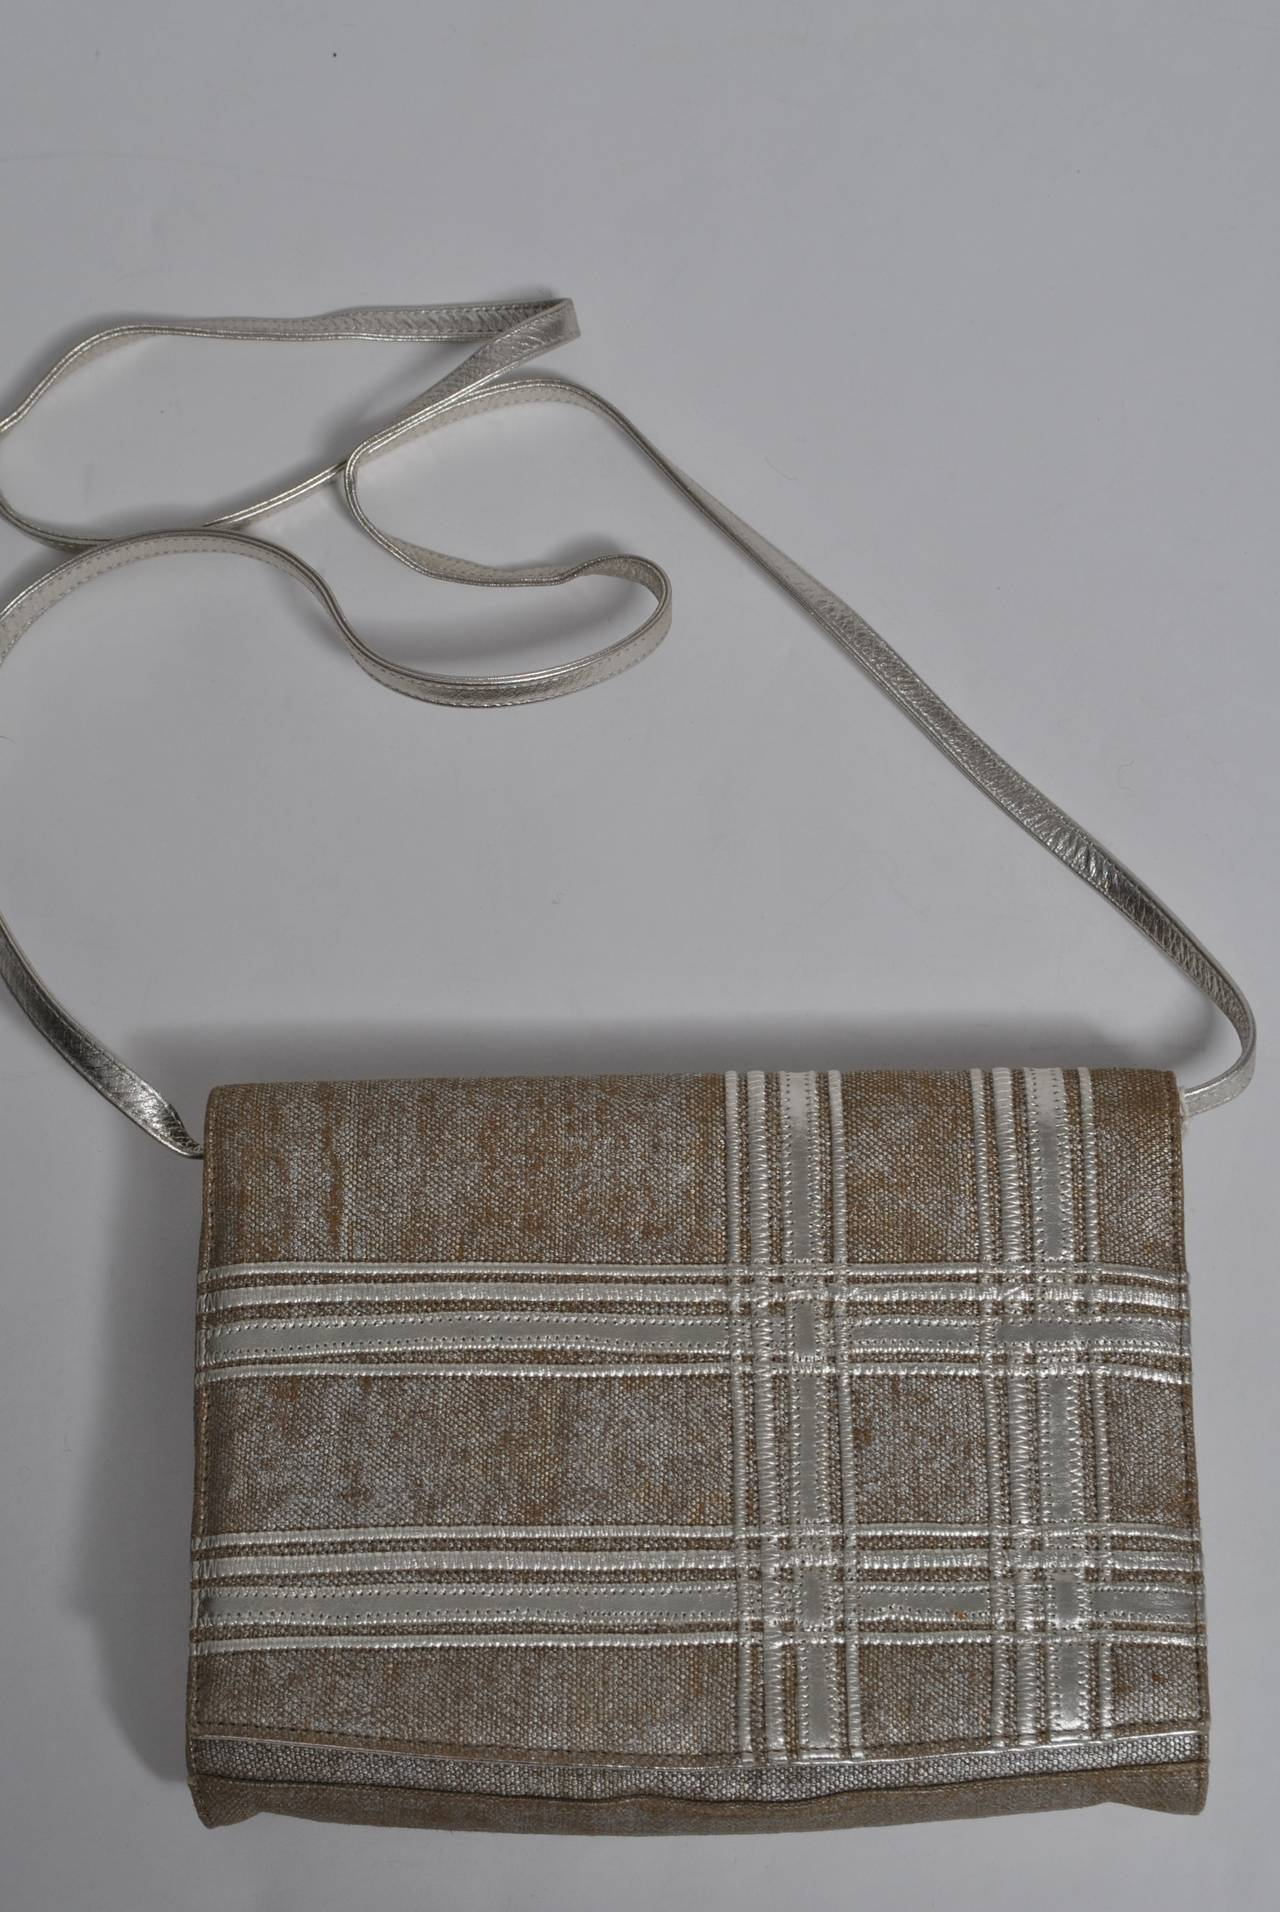 Carlos Falchi Beige Linen and Silver Clutch For Sale 4